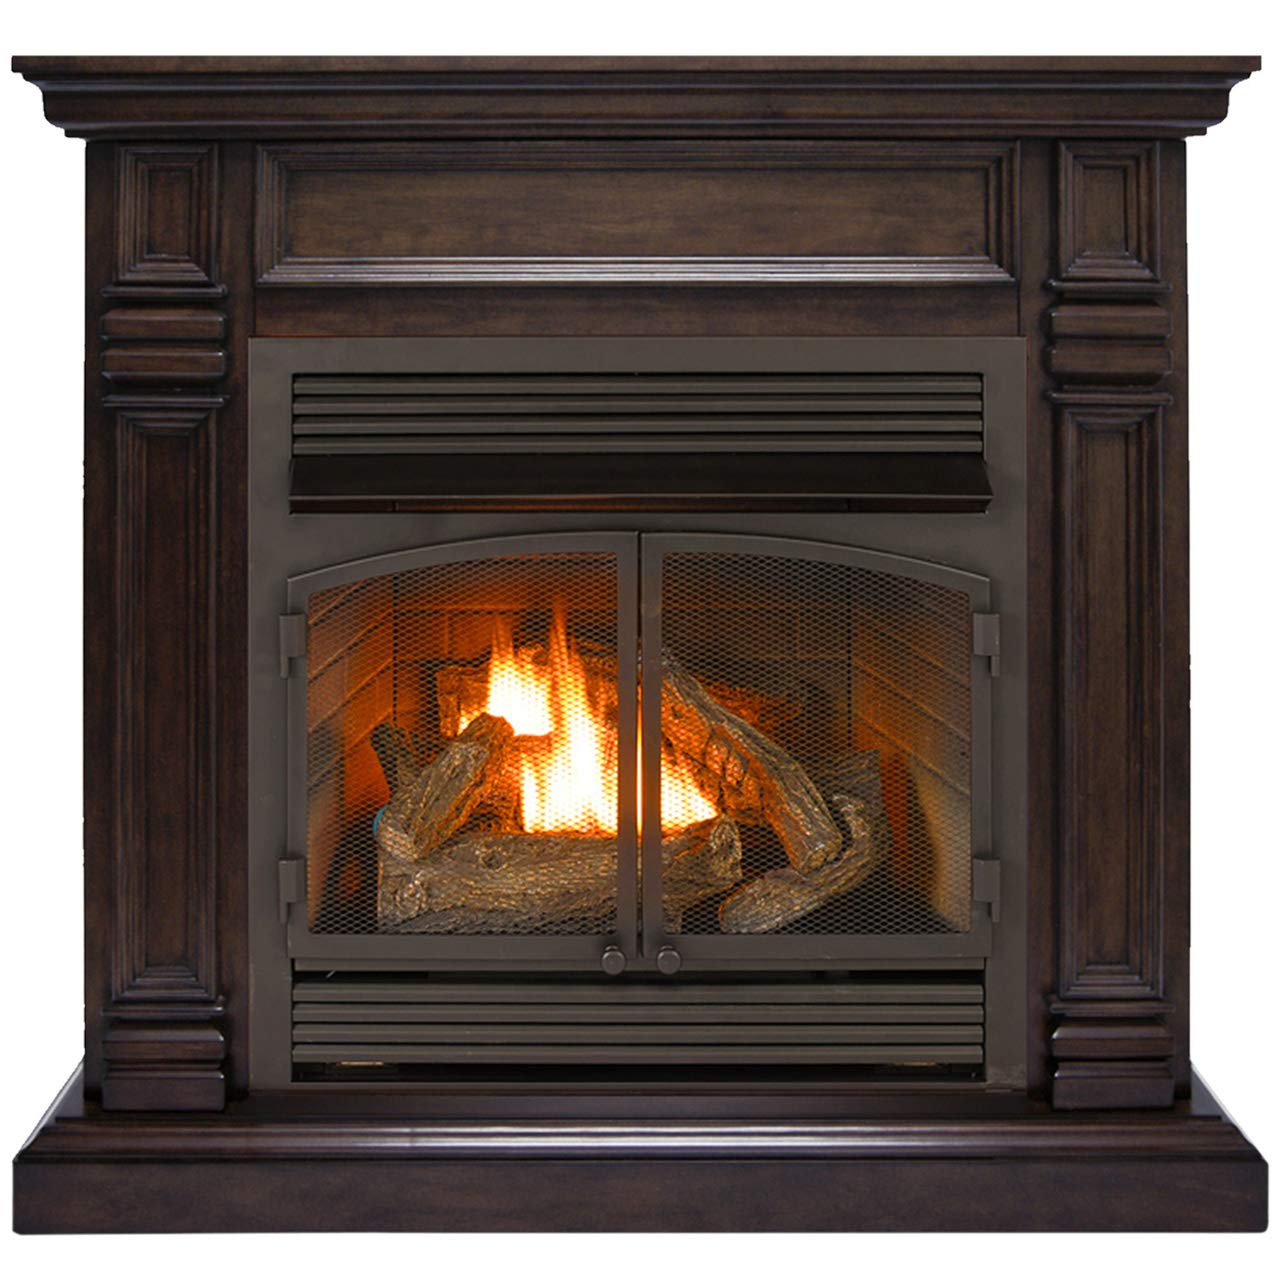 Duluth Forge Dual Fuel Ventless Fireplace Insert-32,000 BTU, T-Stat Control Model FDF400T-ZC, Chocolate by Duluth Forge